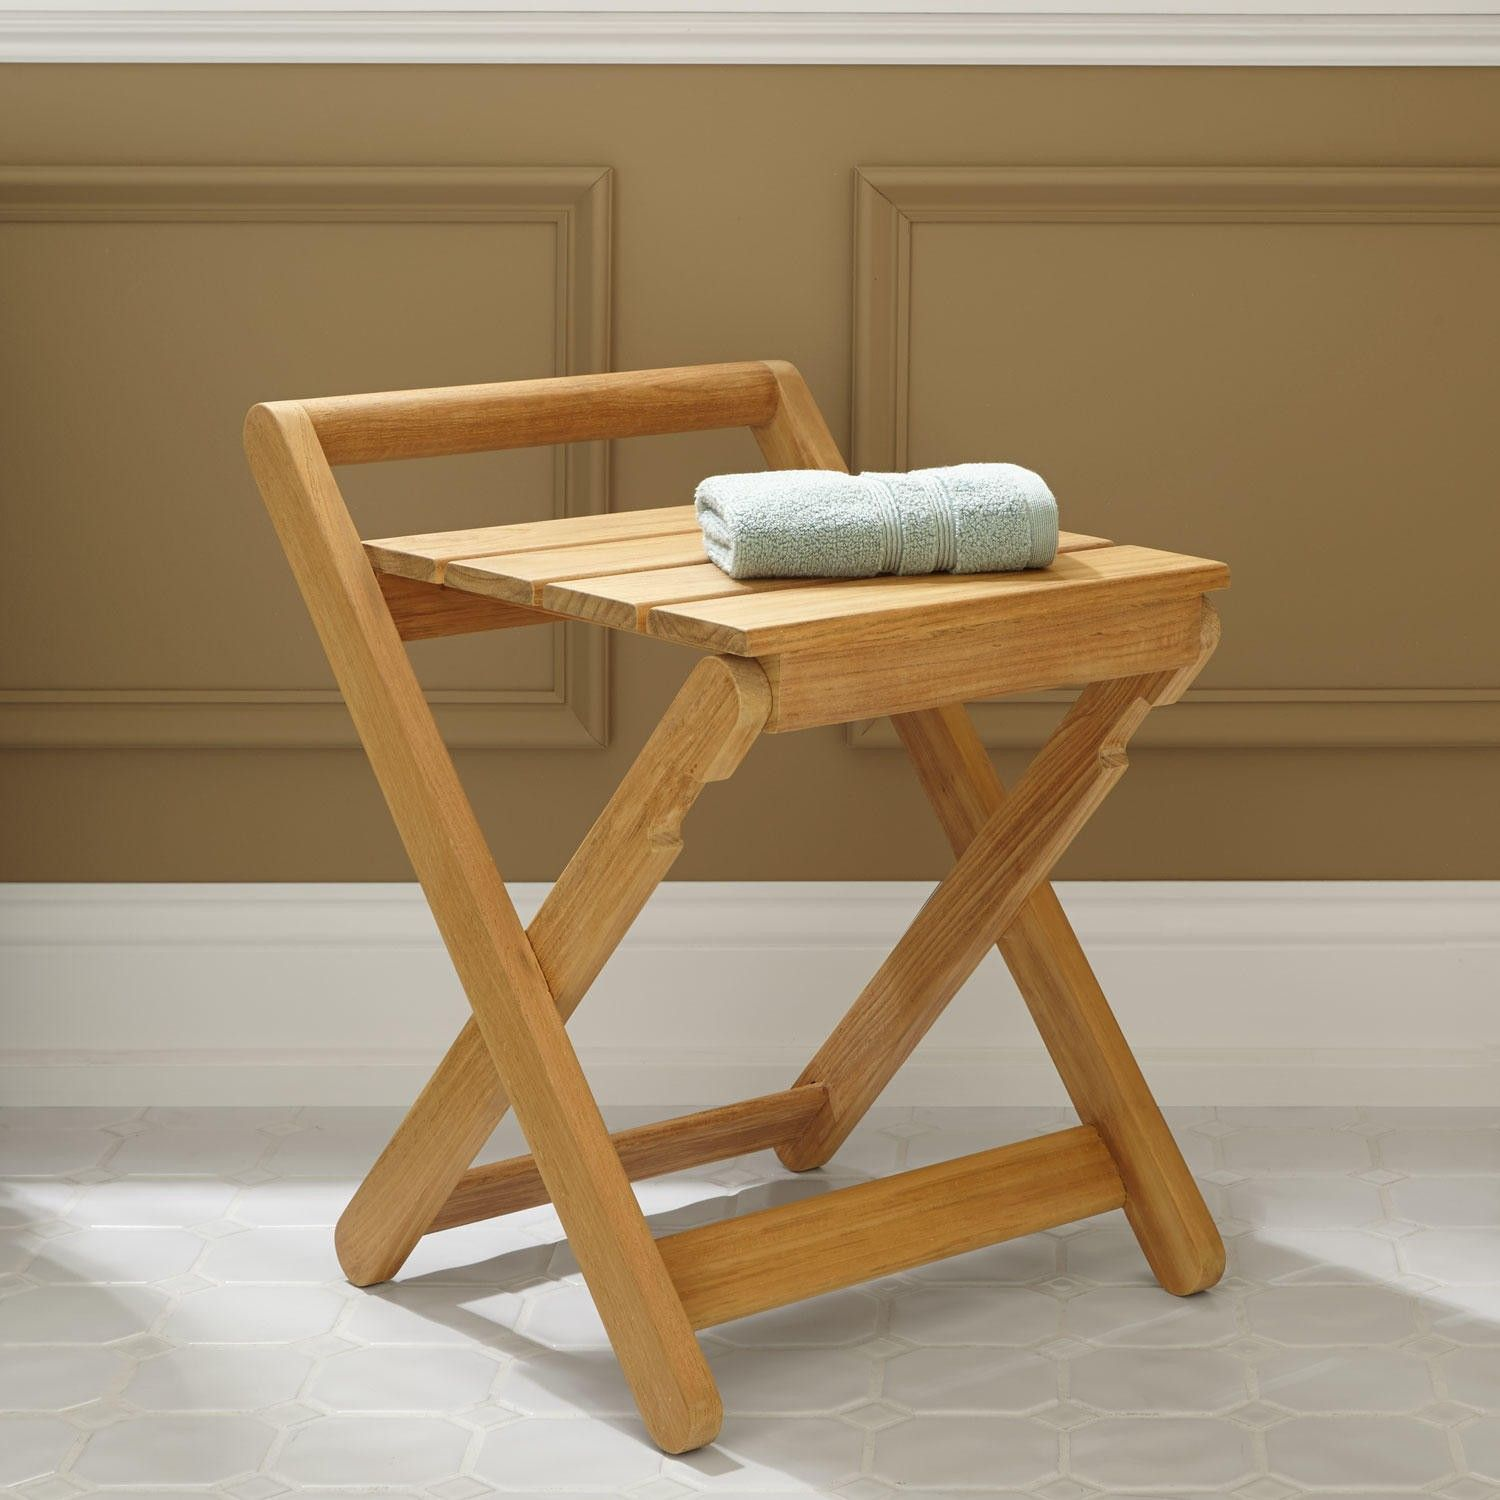 Dhara Teak Folding Shower Stool | Teak, Stools and Shower seat